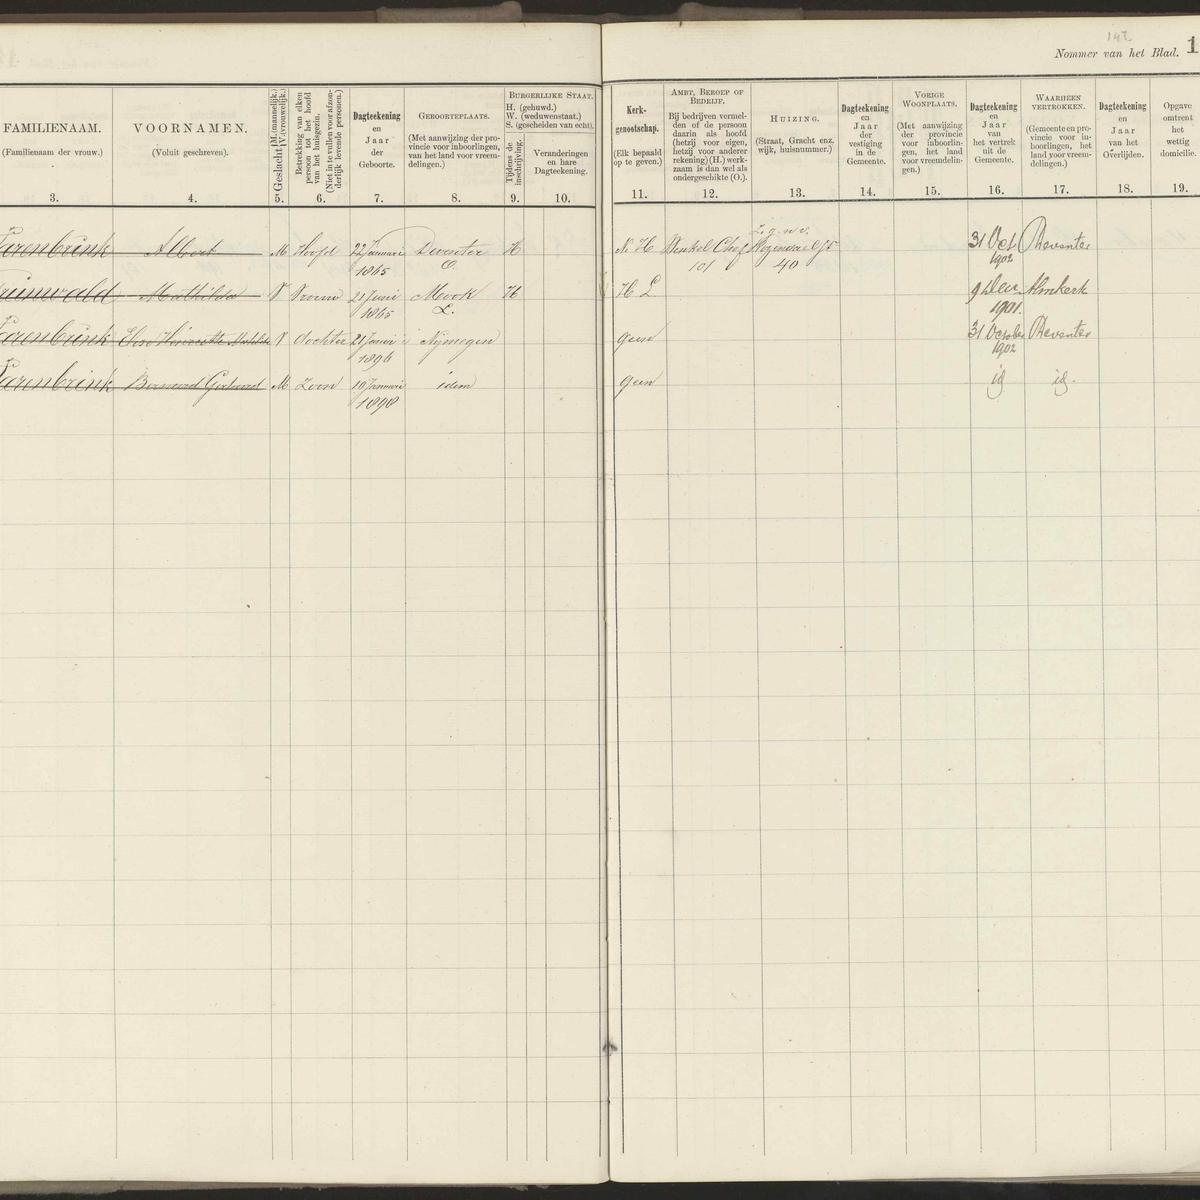 Population registry, Nijmegen, 1900-1910, wijk C, part 10, sheet 148